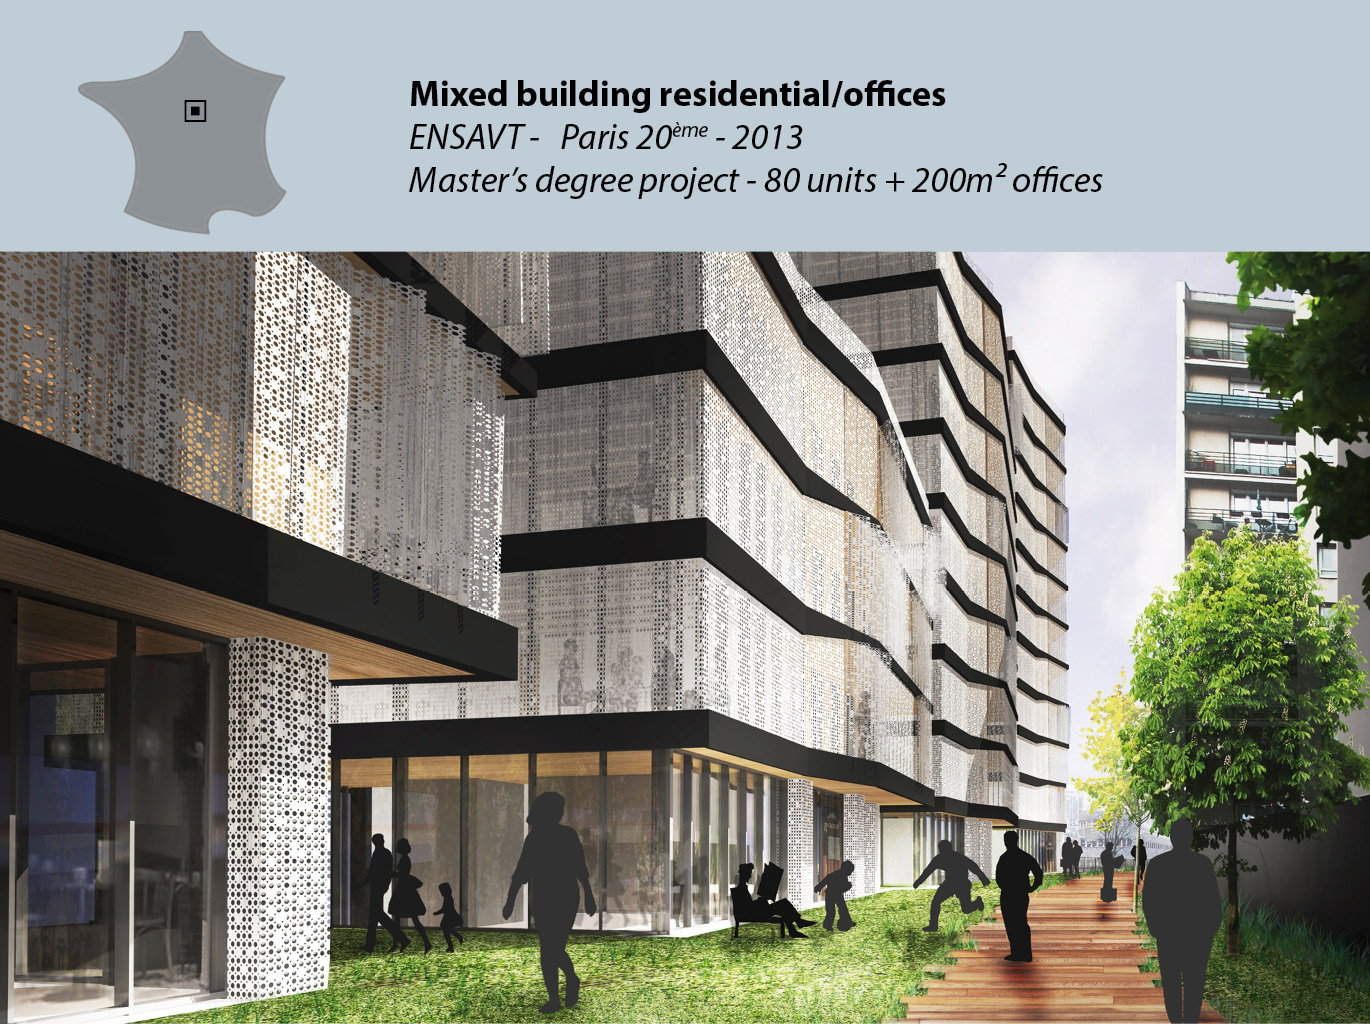 Mixed building residential/offices - Master's Degree project